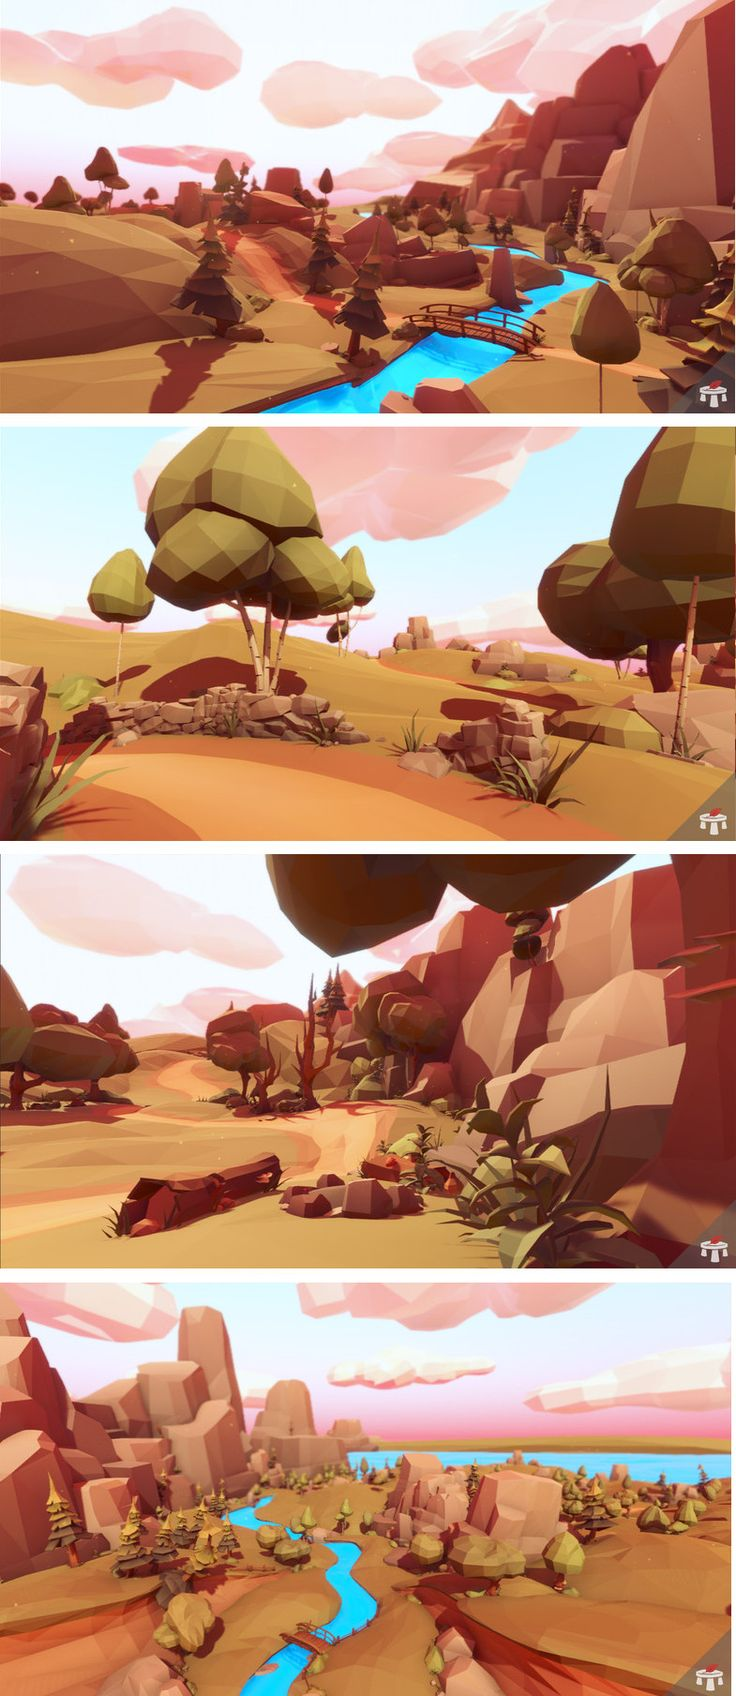 Low Poly Series: Landscape A sturdy pack of stylized low-poly assets that's perfect for a lush and vibrant landscape. – Over 300 assets in total – NEW! 133 Modular Terrain Assets – 18 Trees – 57 Foliage Assets – 30 Various Props – 16 Rocks / Cliffs – 58 Ground and Terrain Assets – All assets consist of 2 textures. UNIT